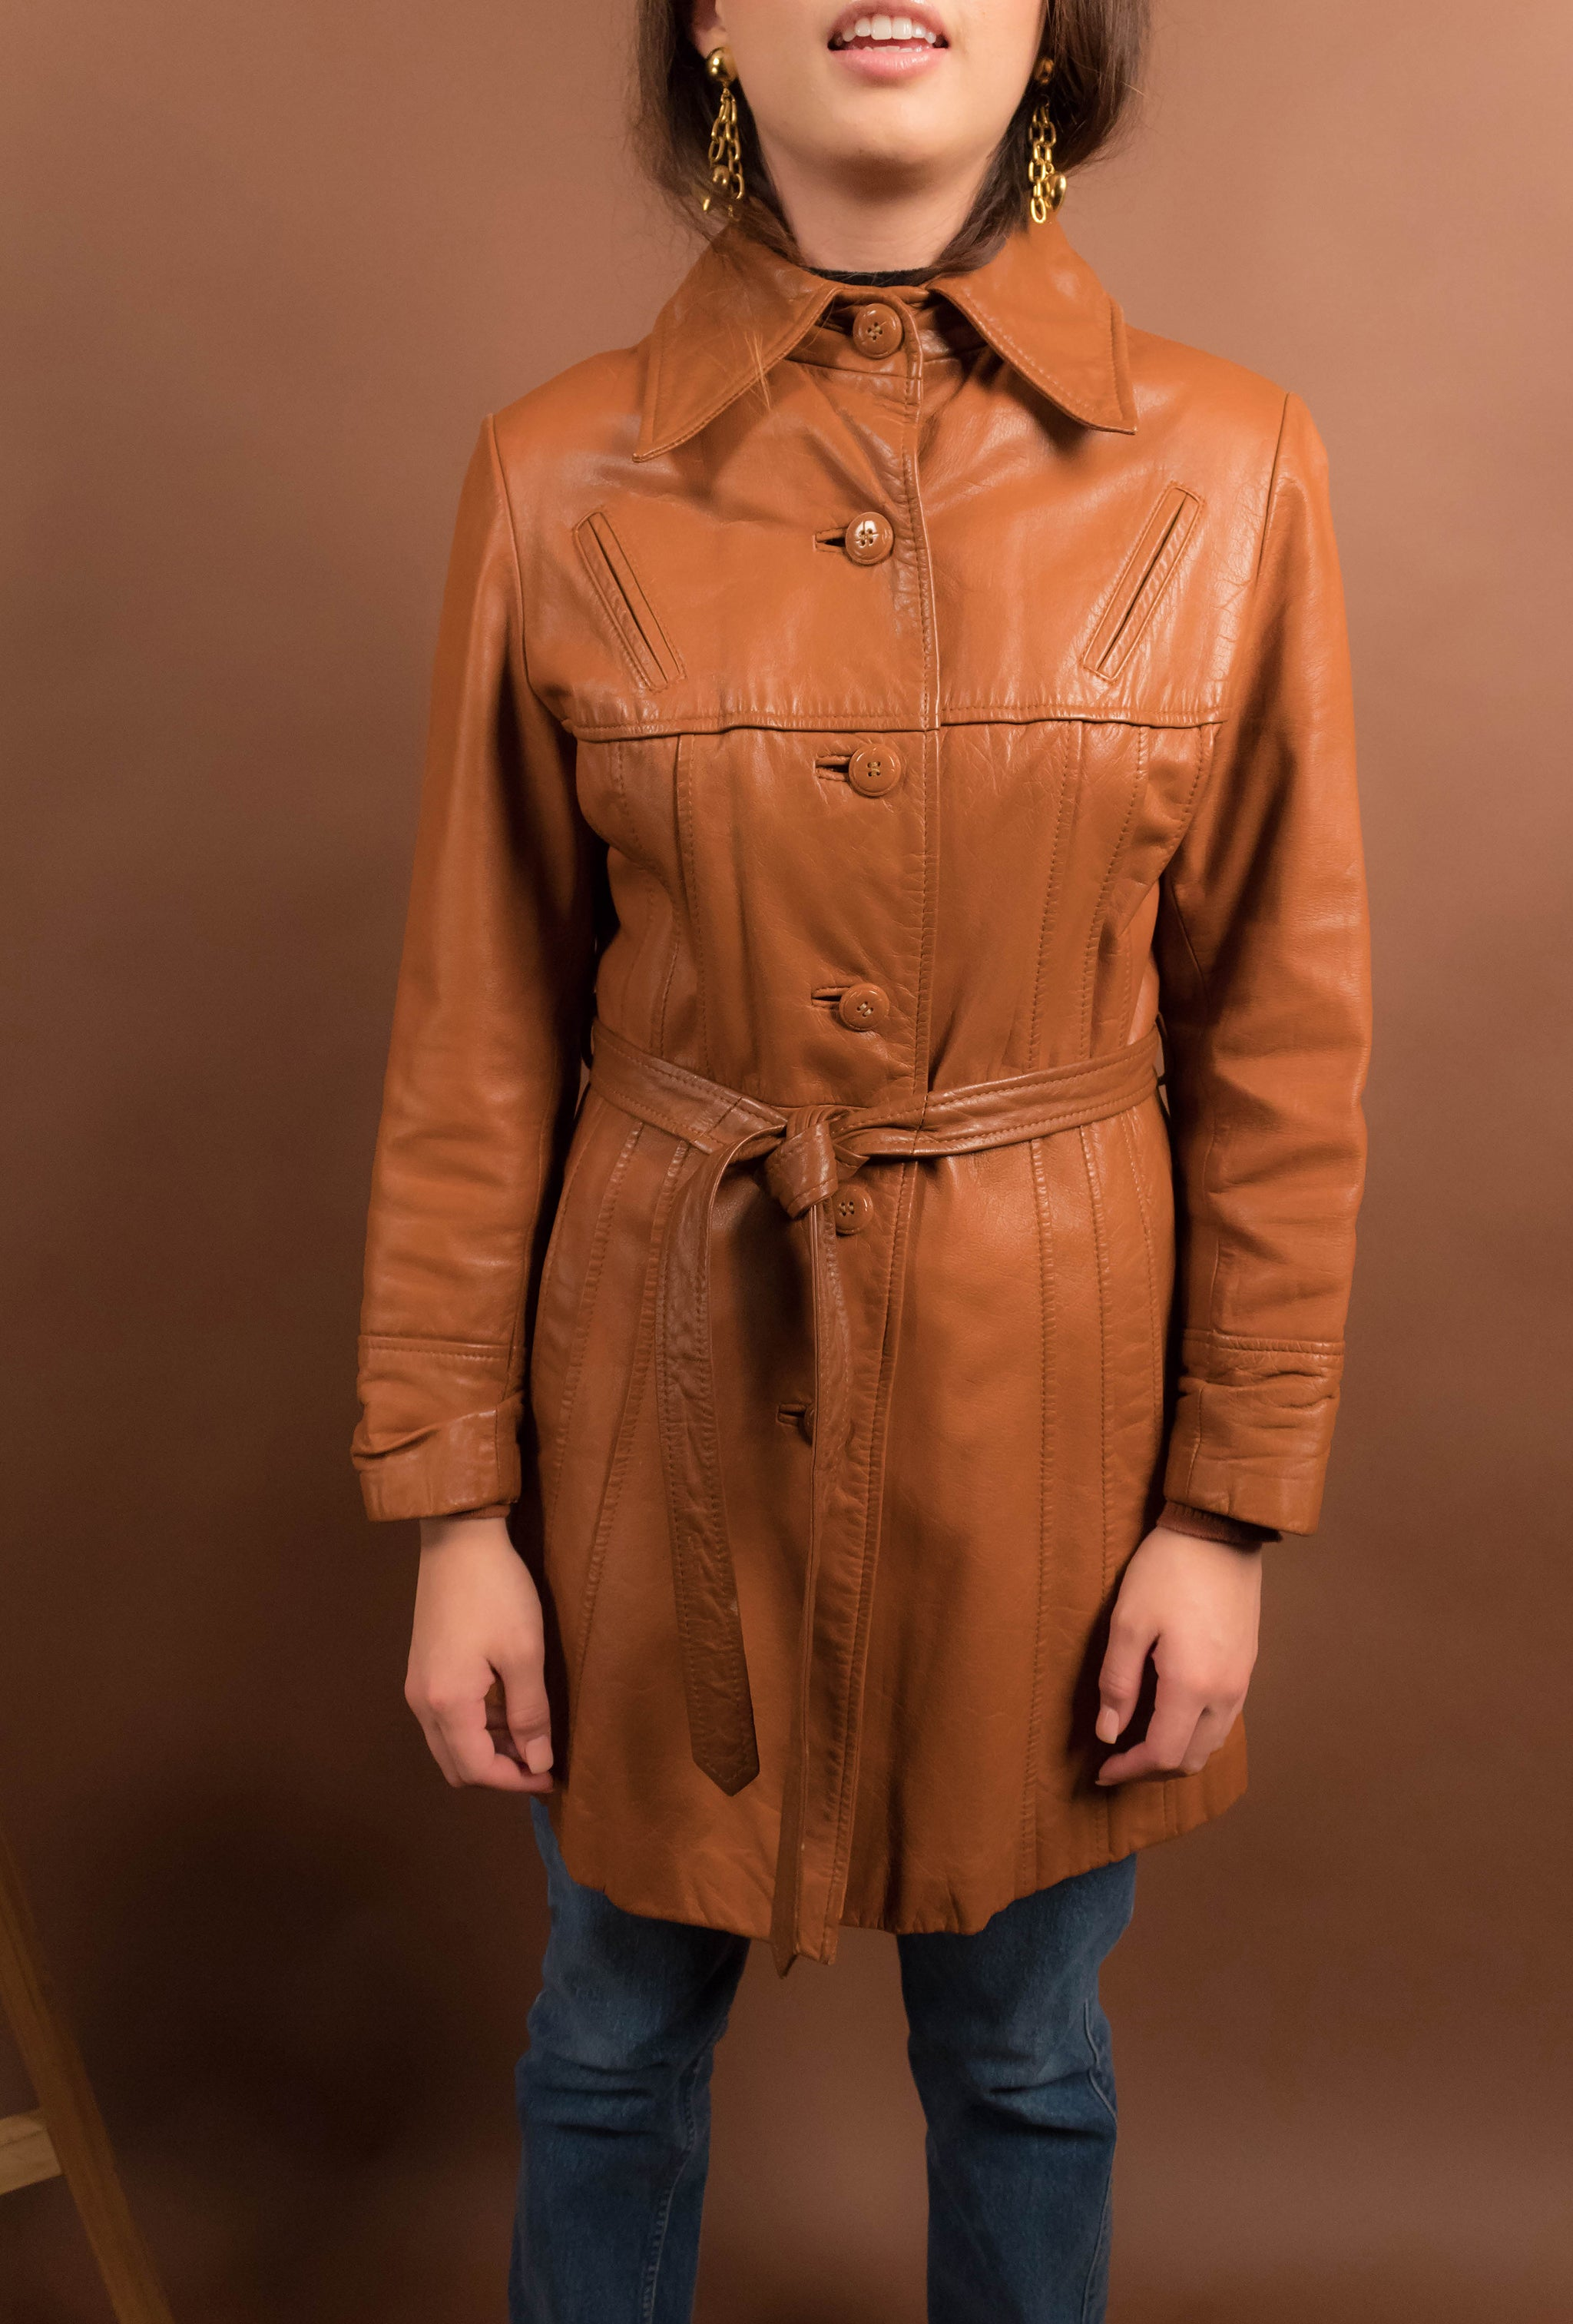 70s Pleated Boho Leather Jacket